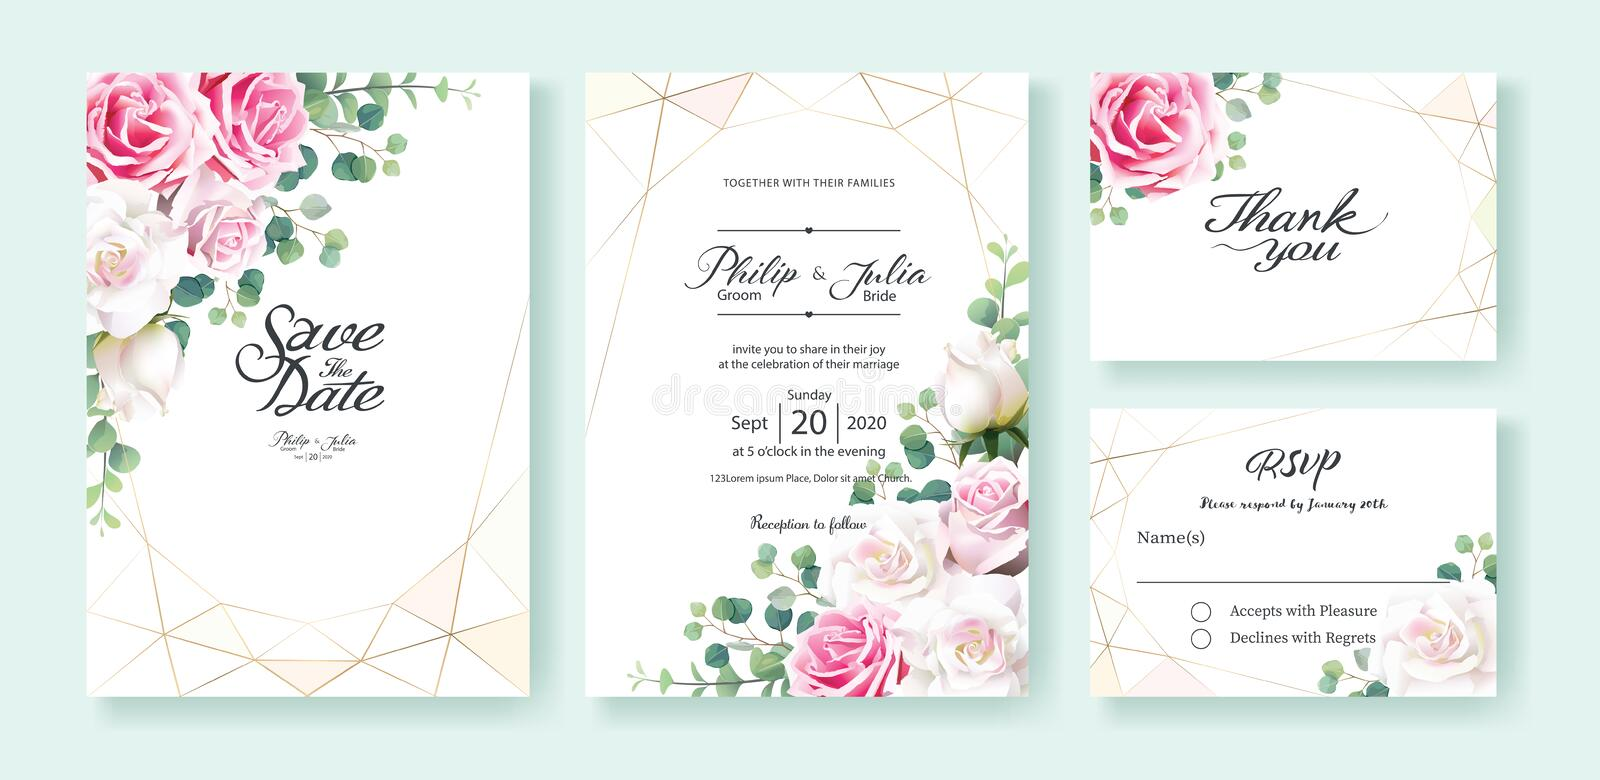 Pink and white rose flowers Wedding Invitation, save the date, thank you, rsvp card Design template. Vector. Silver dollar vector illustration